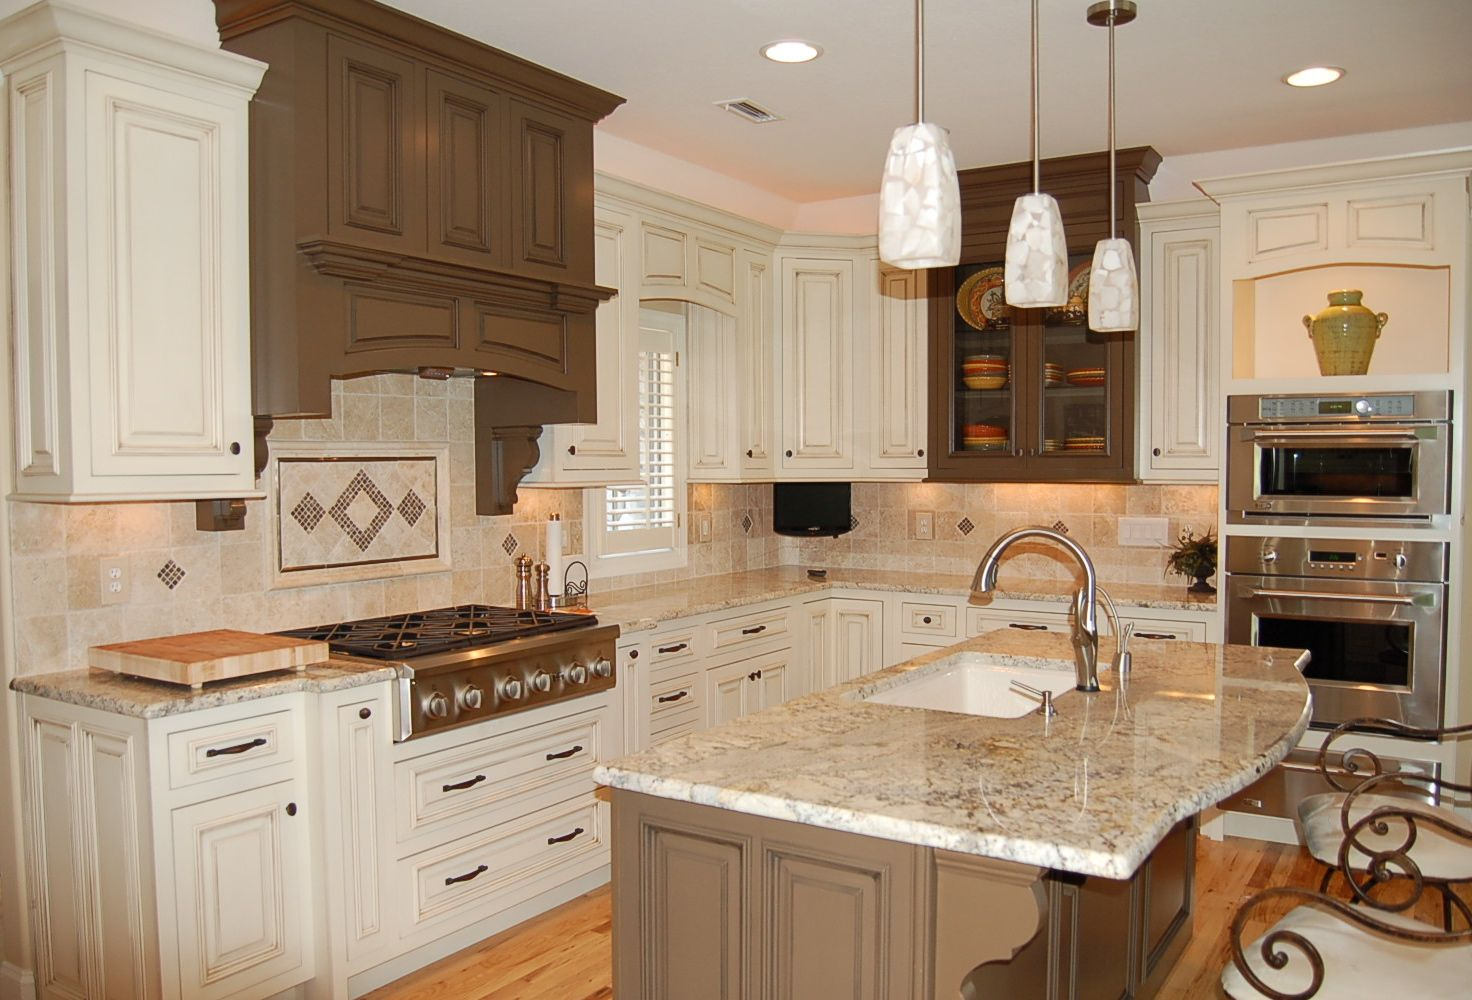 Lighting Fixtures Above Kitchen Island Pendant Lighting Over Kitchen Island For The Home